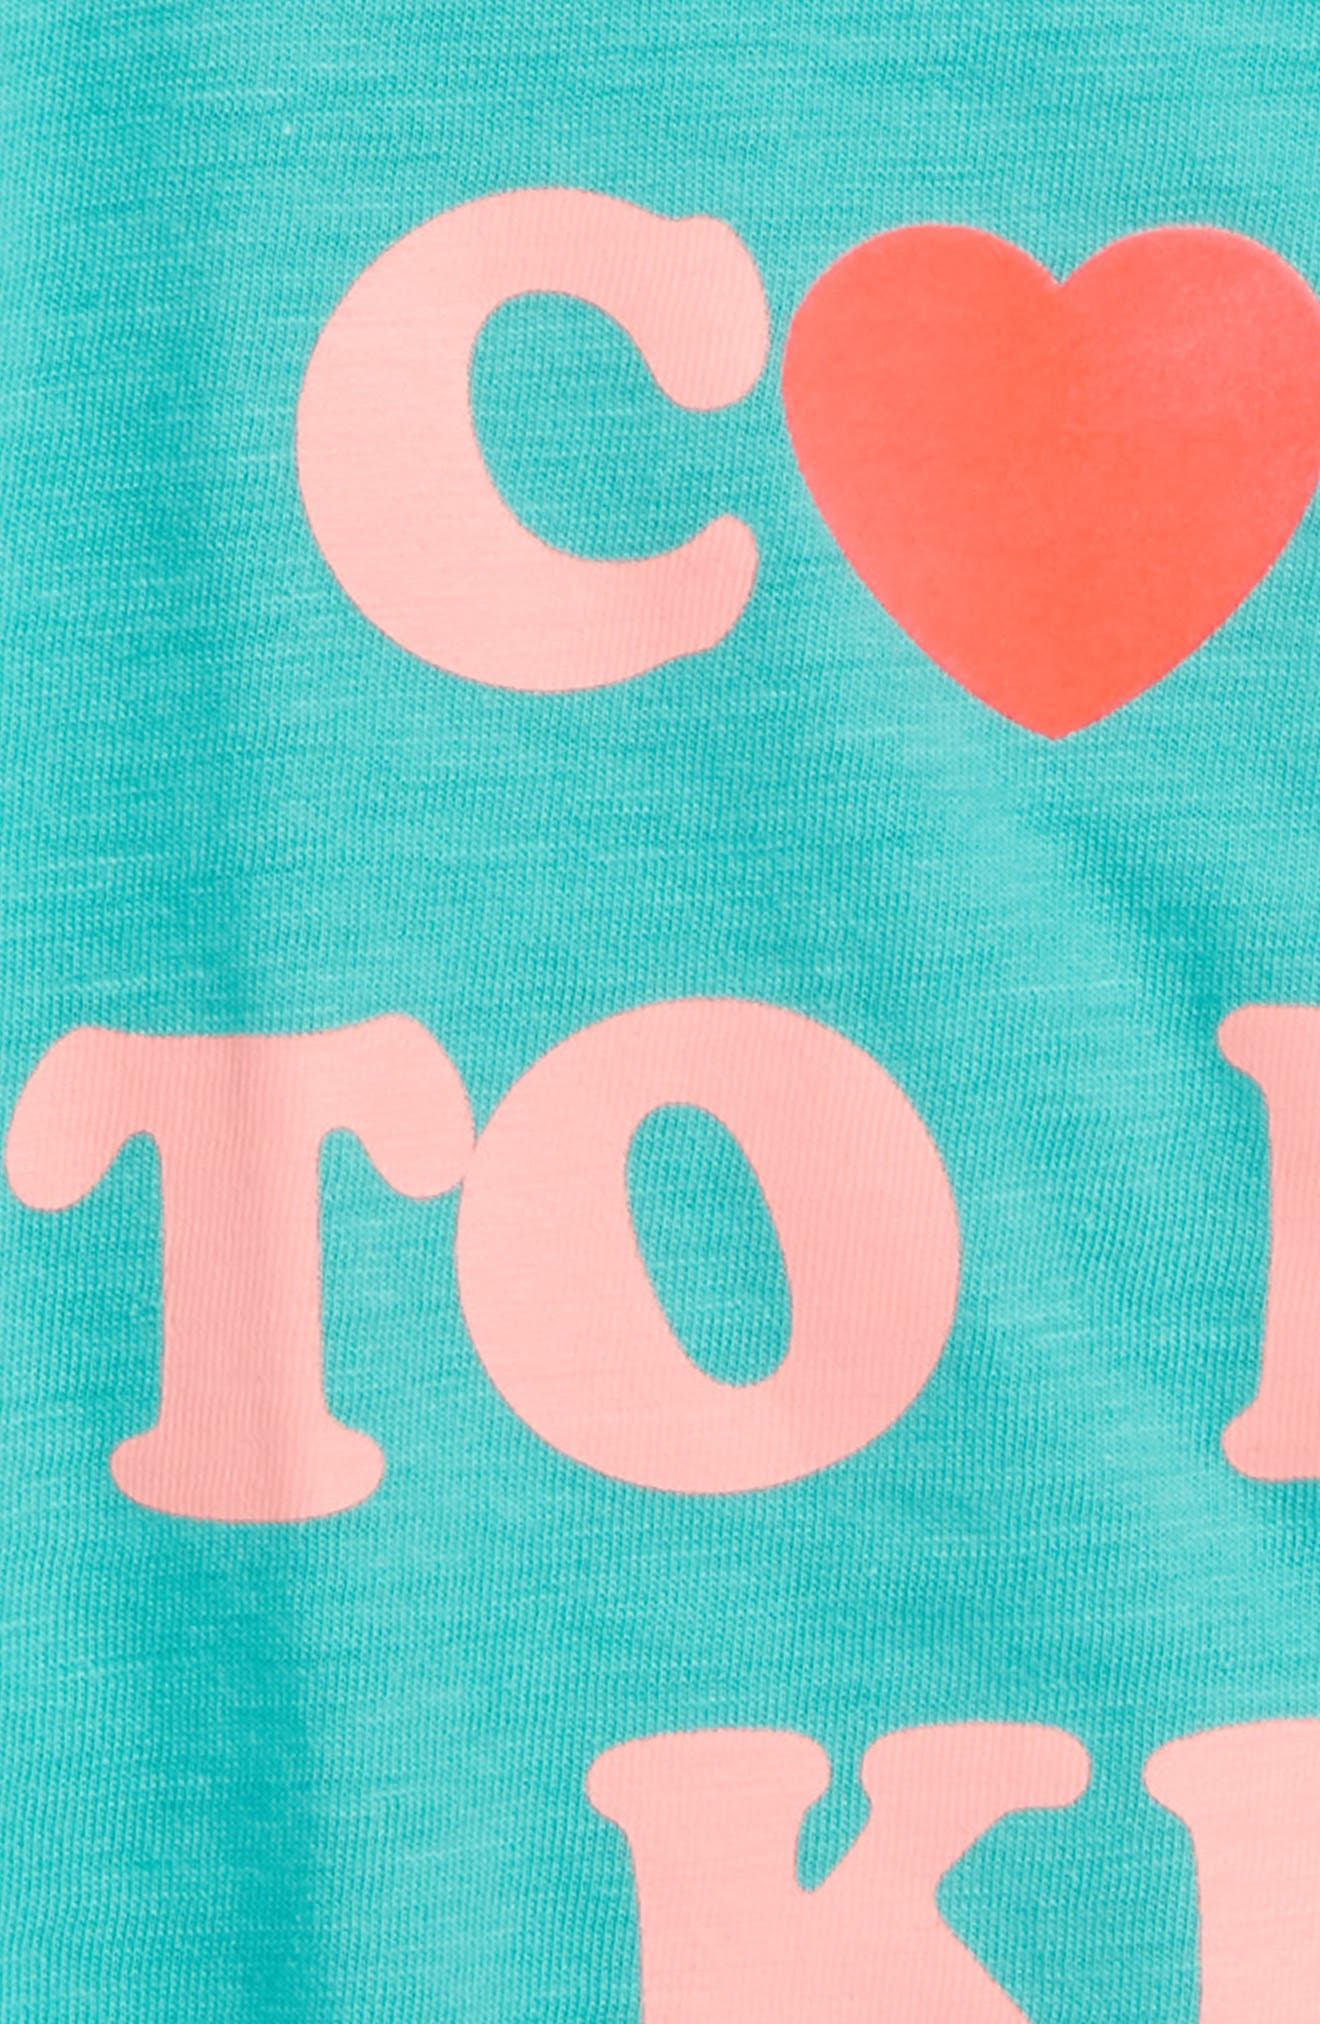 crewcuts by J. Crew Cool to Be Kind Graphic Tee,                             Alternate thumbnail 2, color,                             300